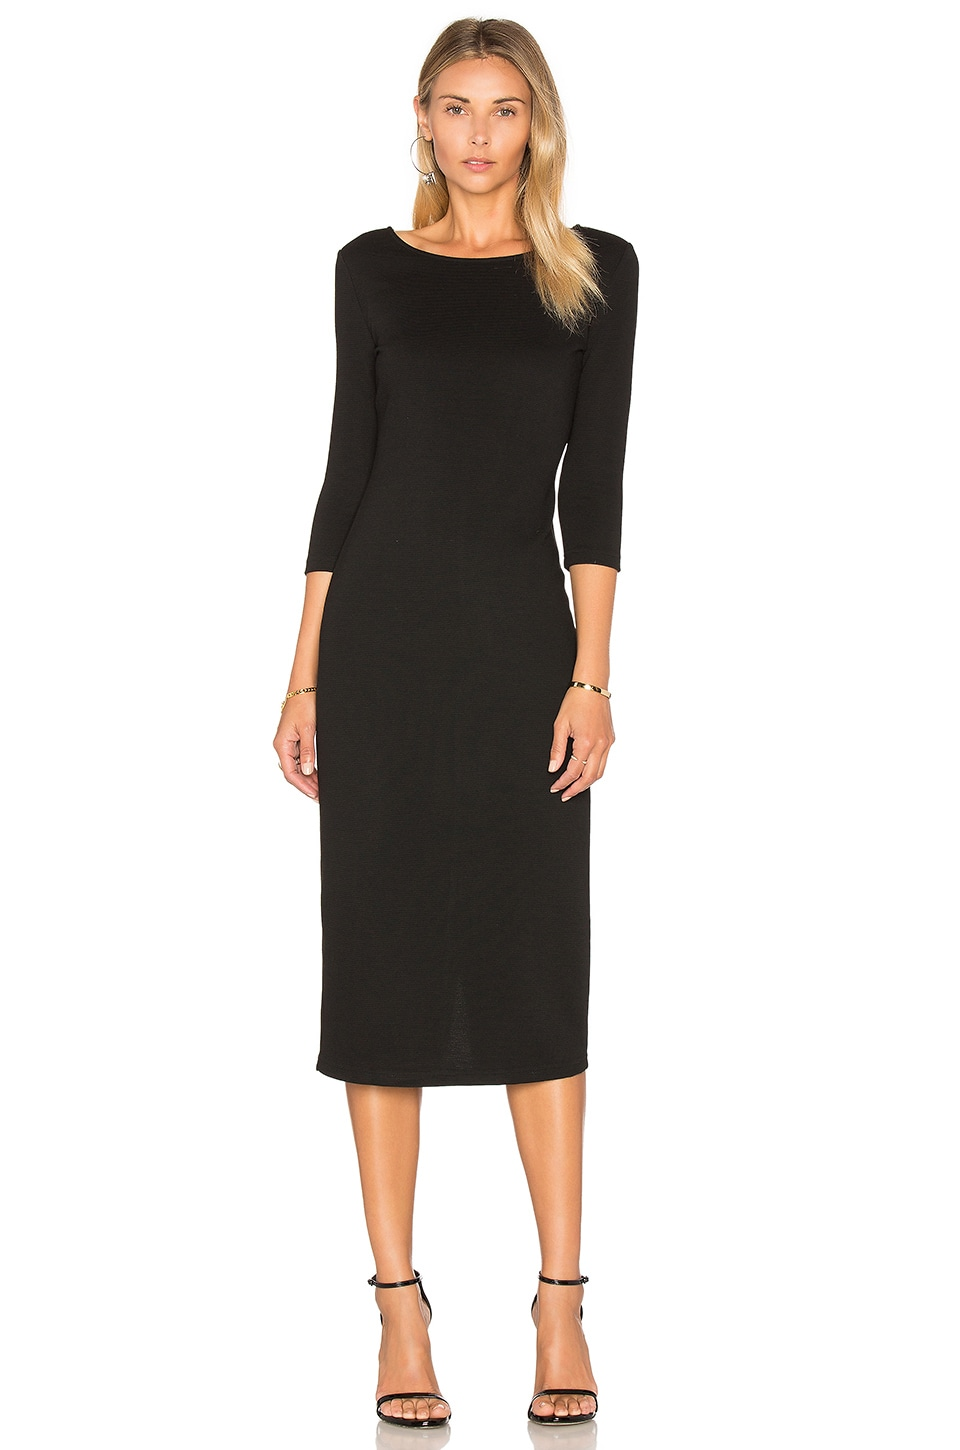 BB Dakota Radford Dress in Black | REVOLVE